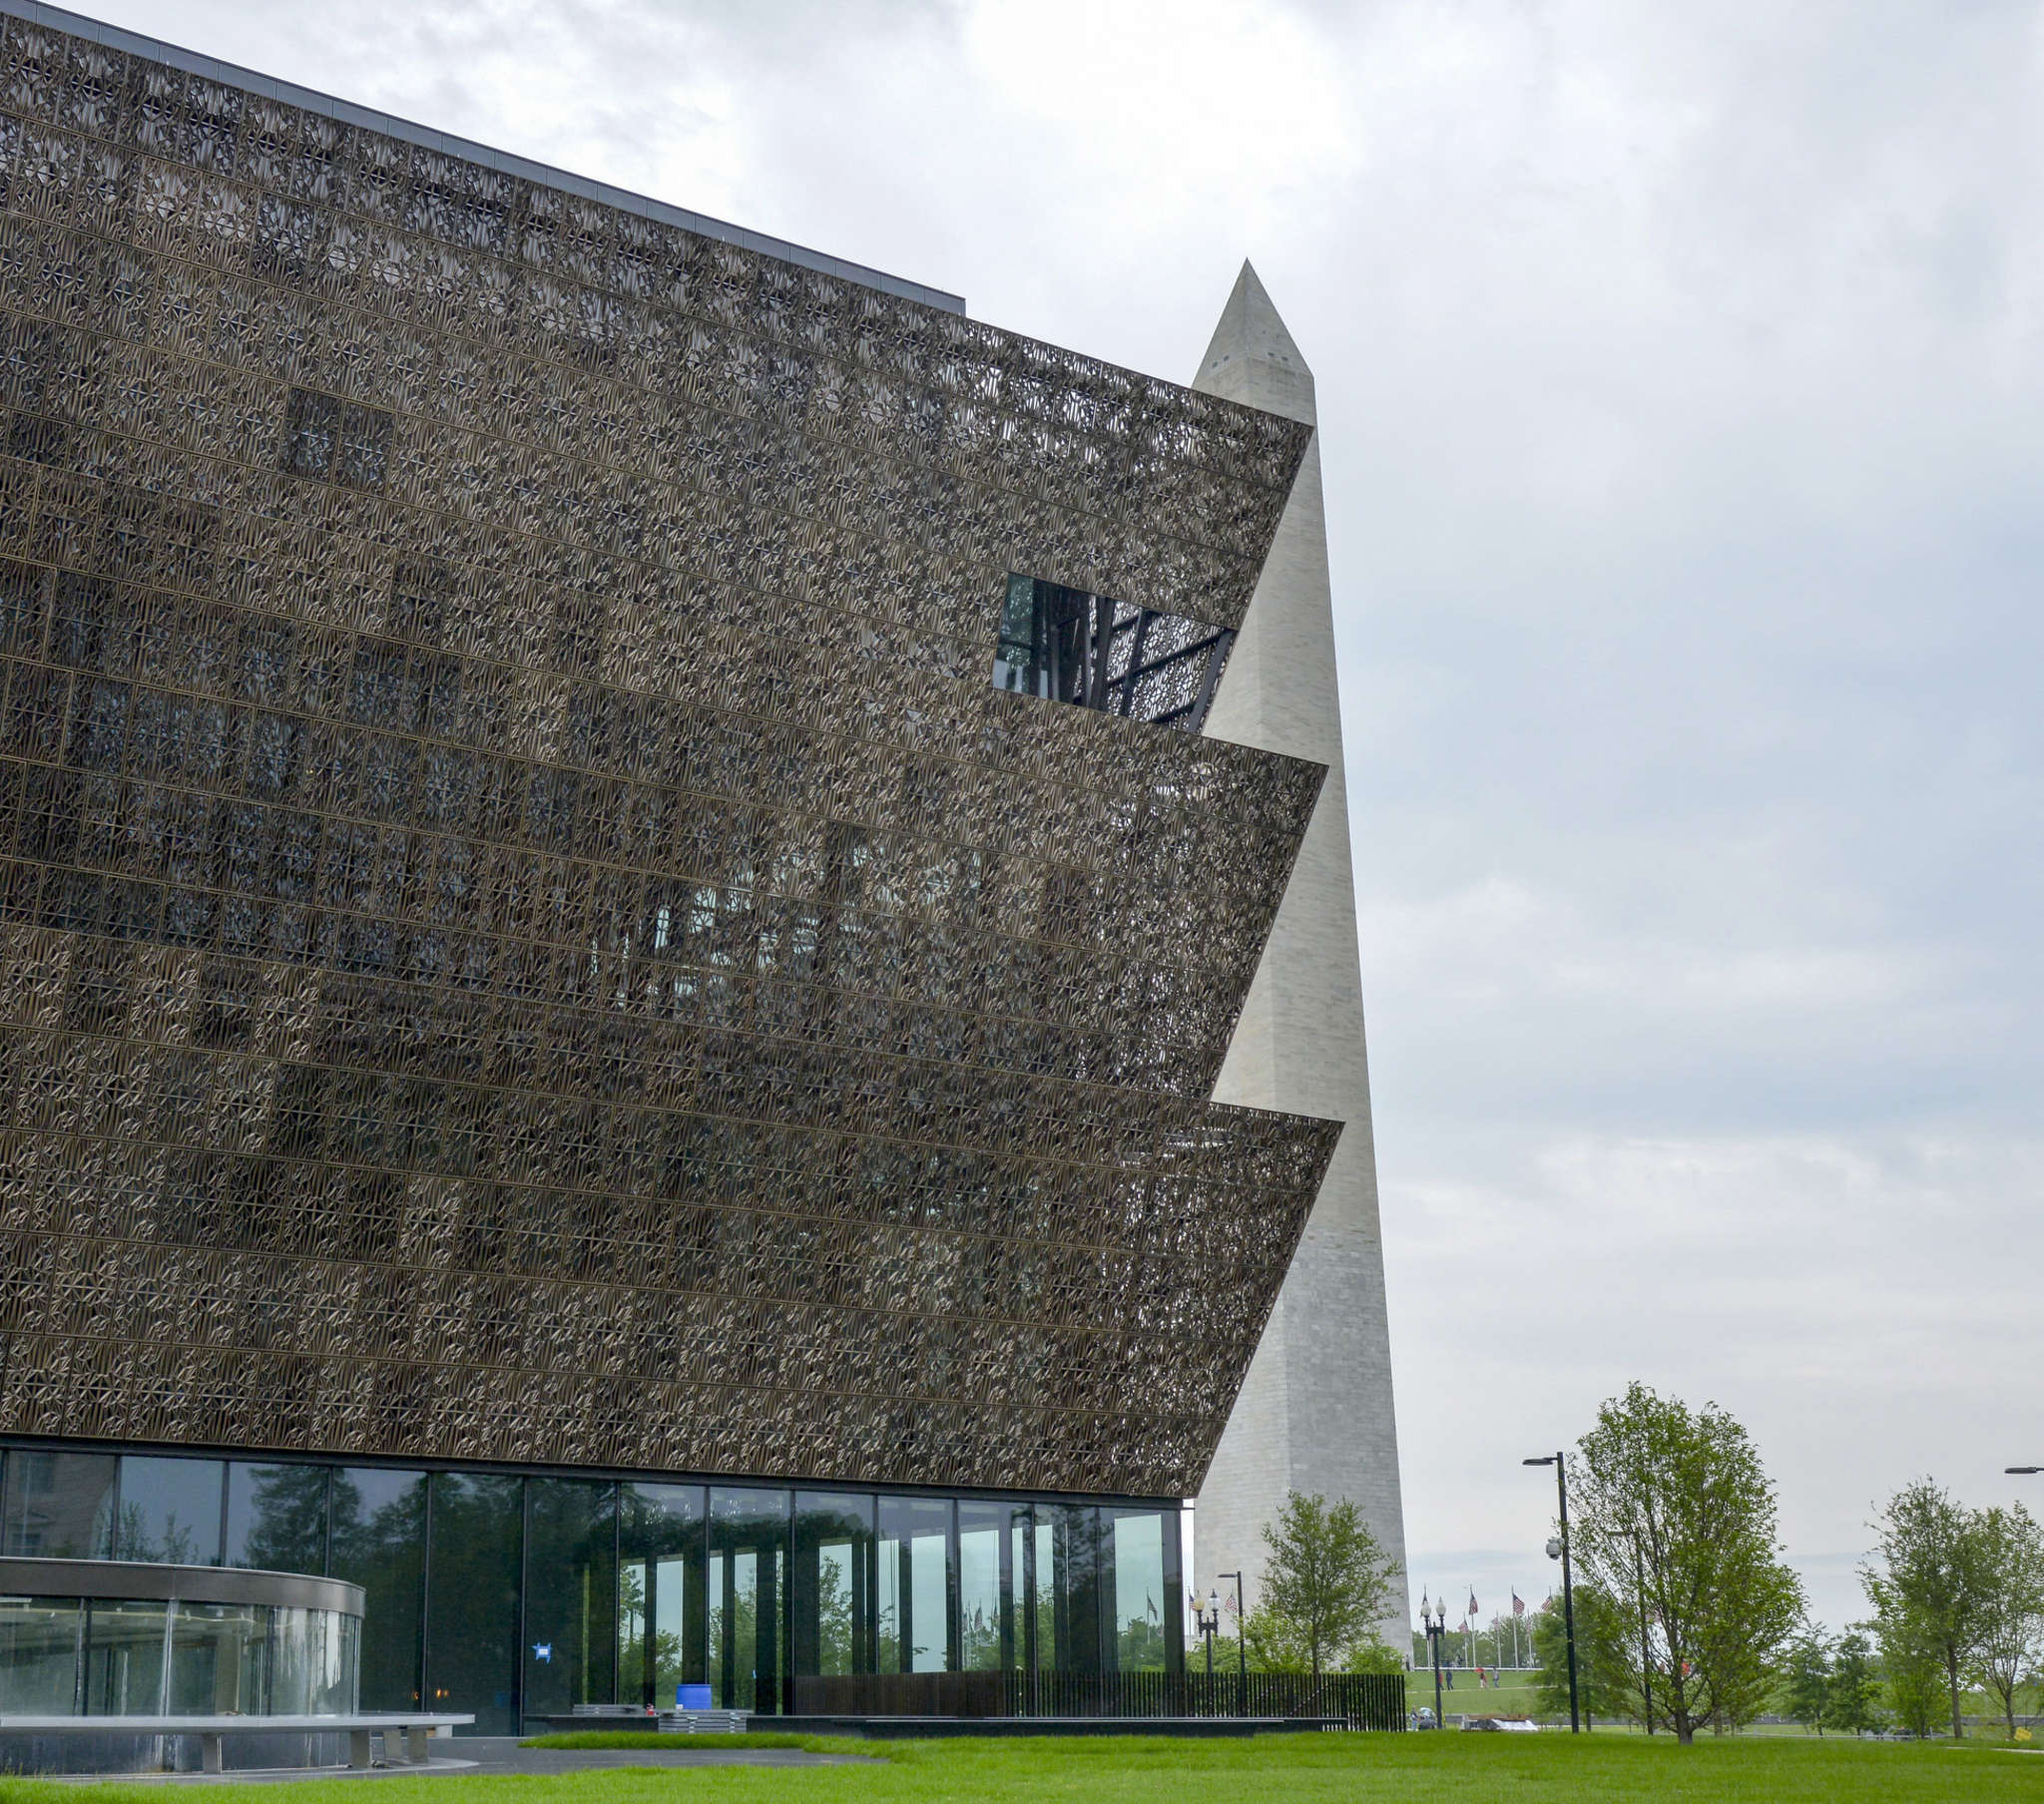 The National Museum of African American History and Culture opens Sept. 24. JAHI CHIKWENDIU / Washington Post